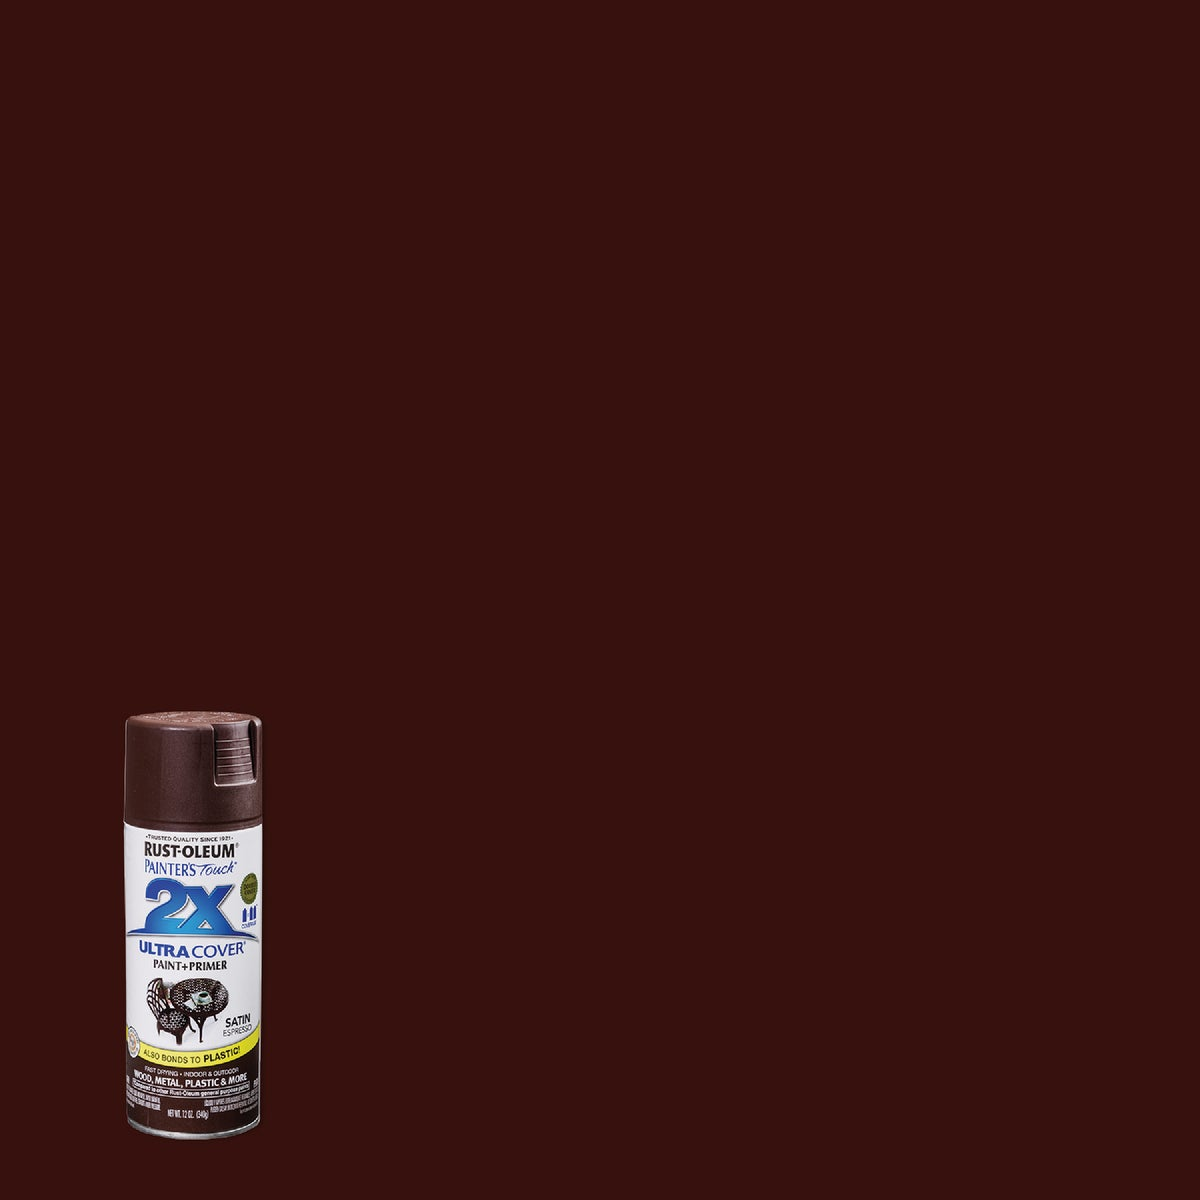 SAT ESPRESSO SPRAY PAINT - 249081 by Rustoleum